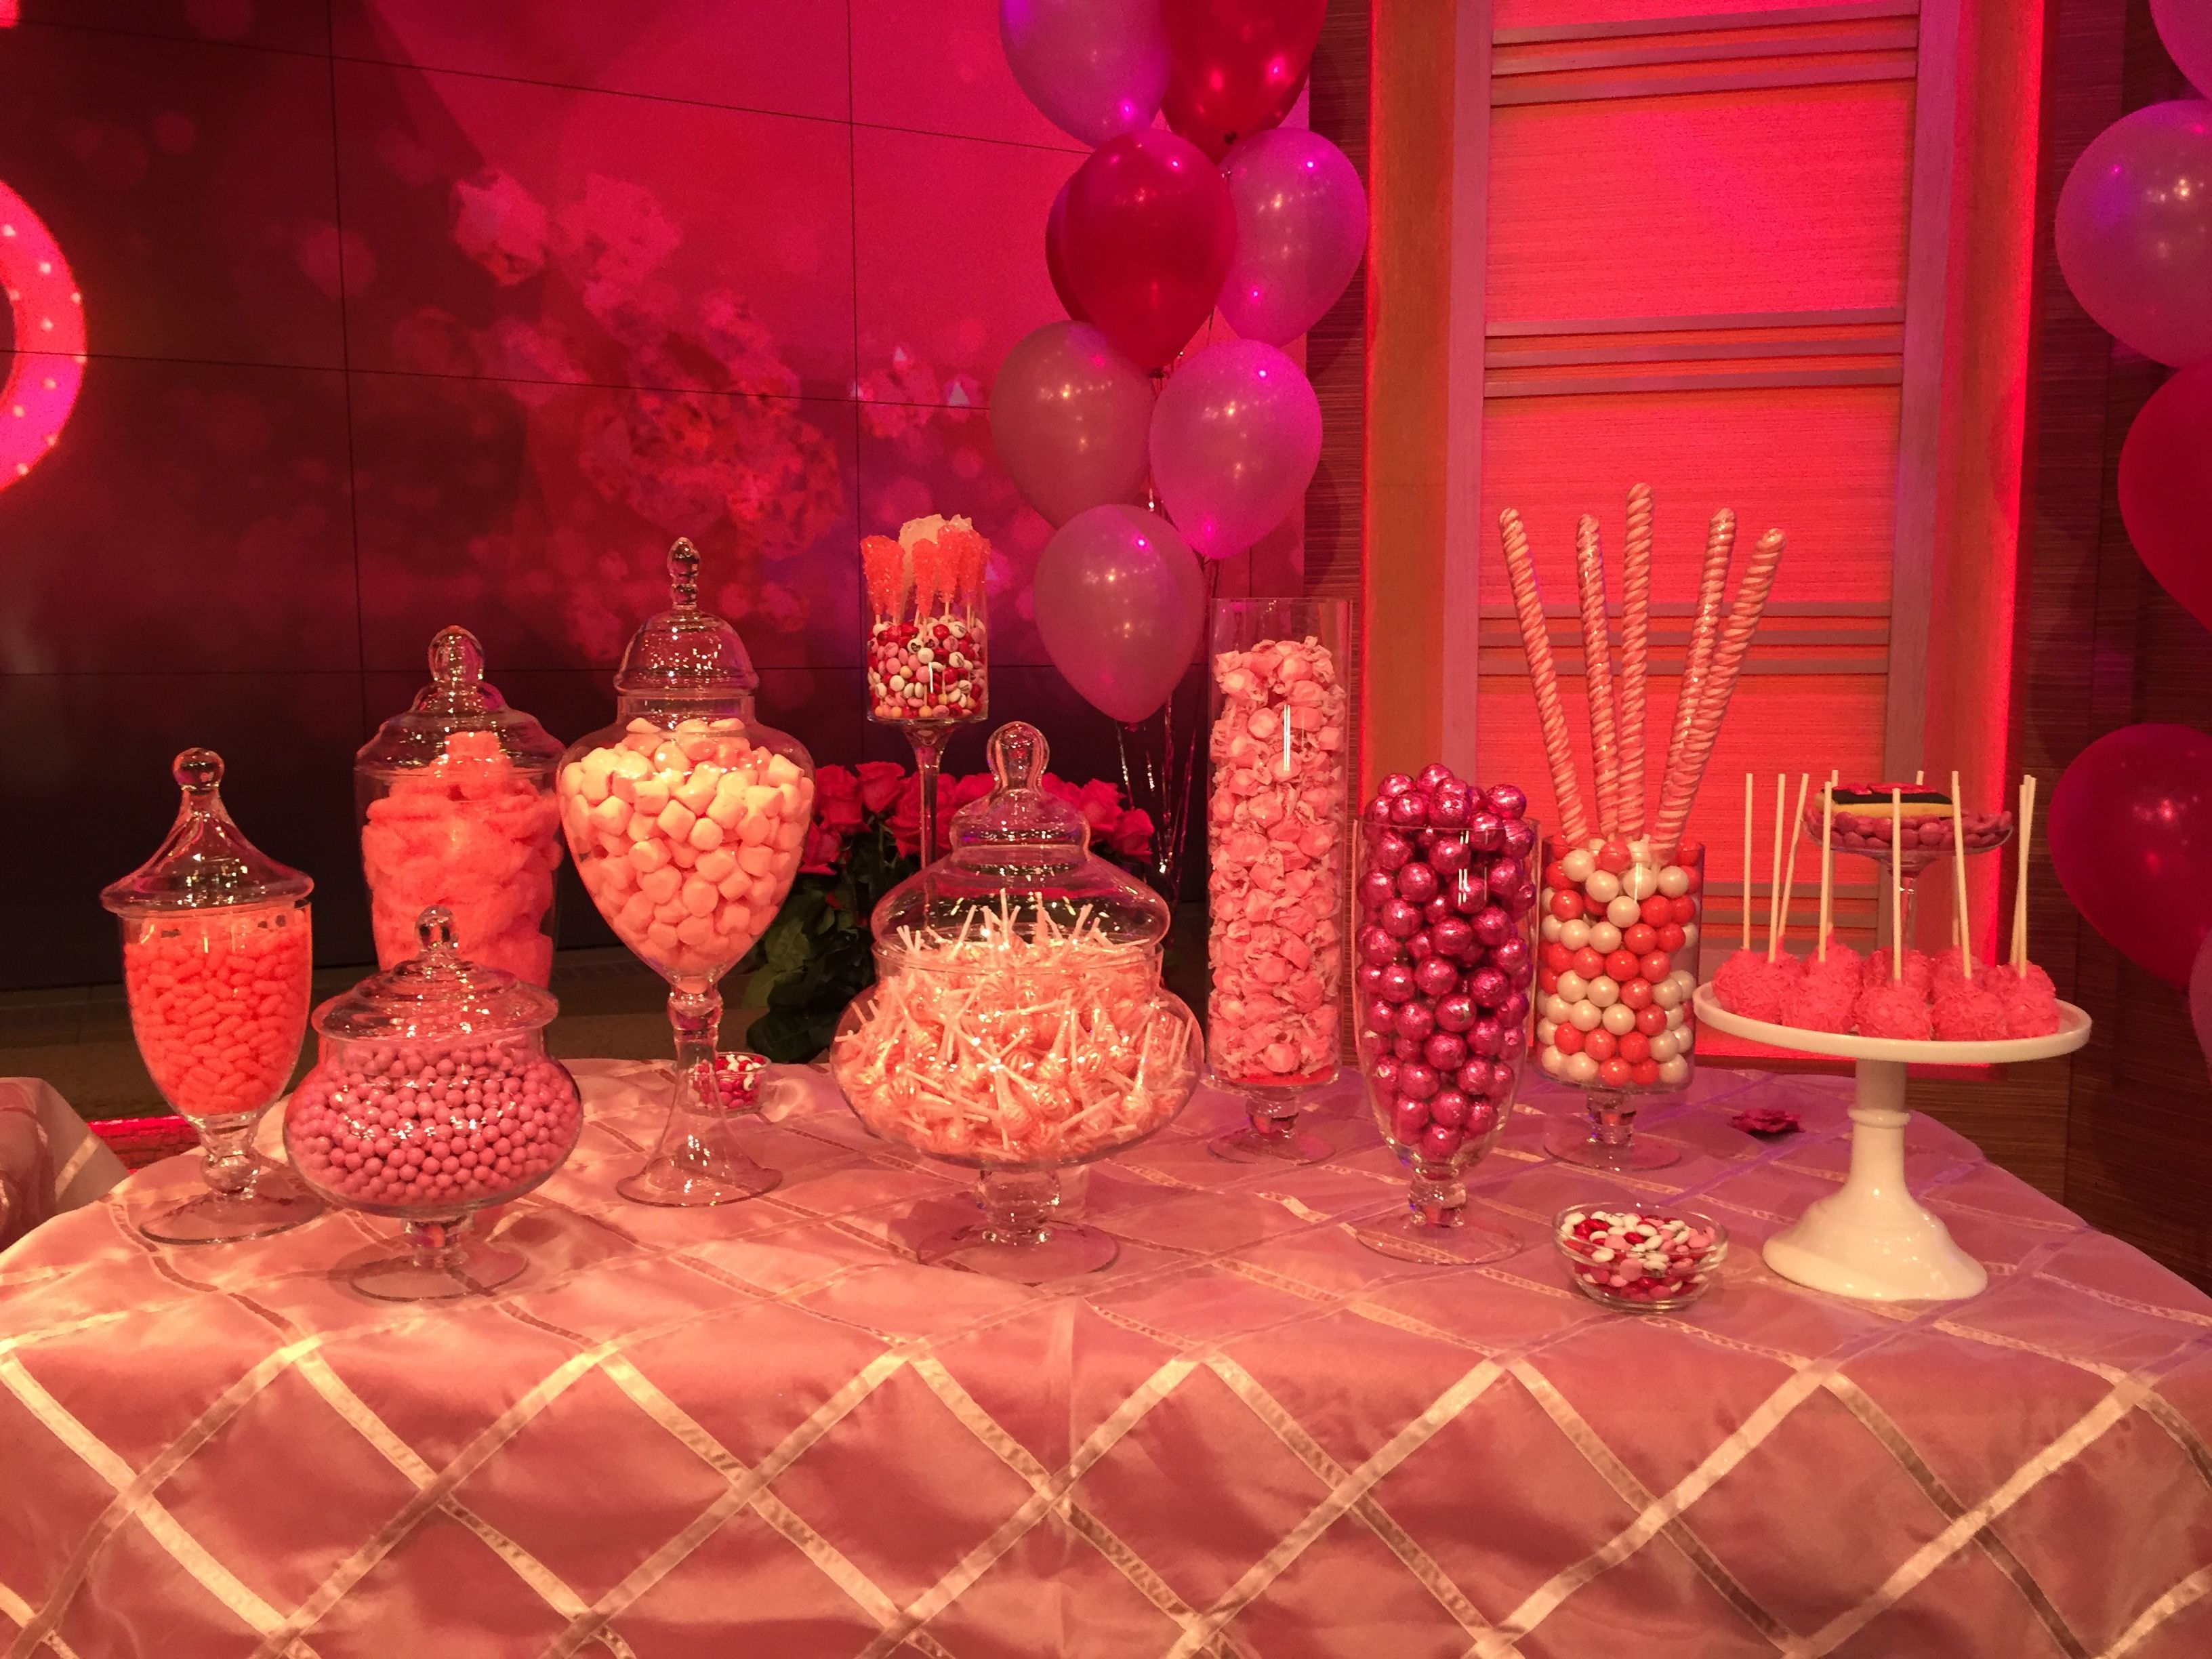 Candy buffet ideas for sweet sixteen - Kelly Ripa S Sweet 15 Party Candy Table From Pretty Sweet Candy Buffet Live With Kelly